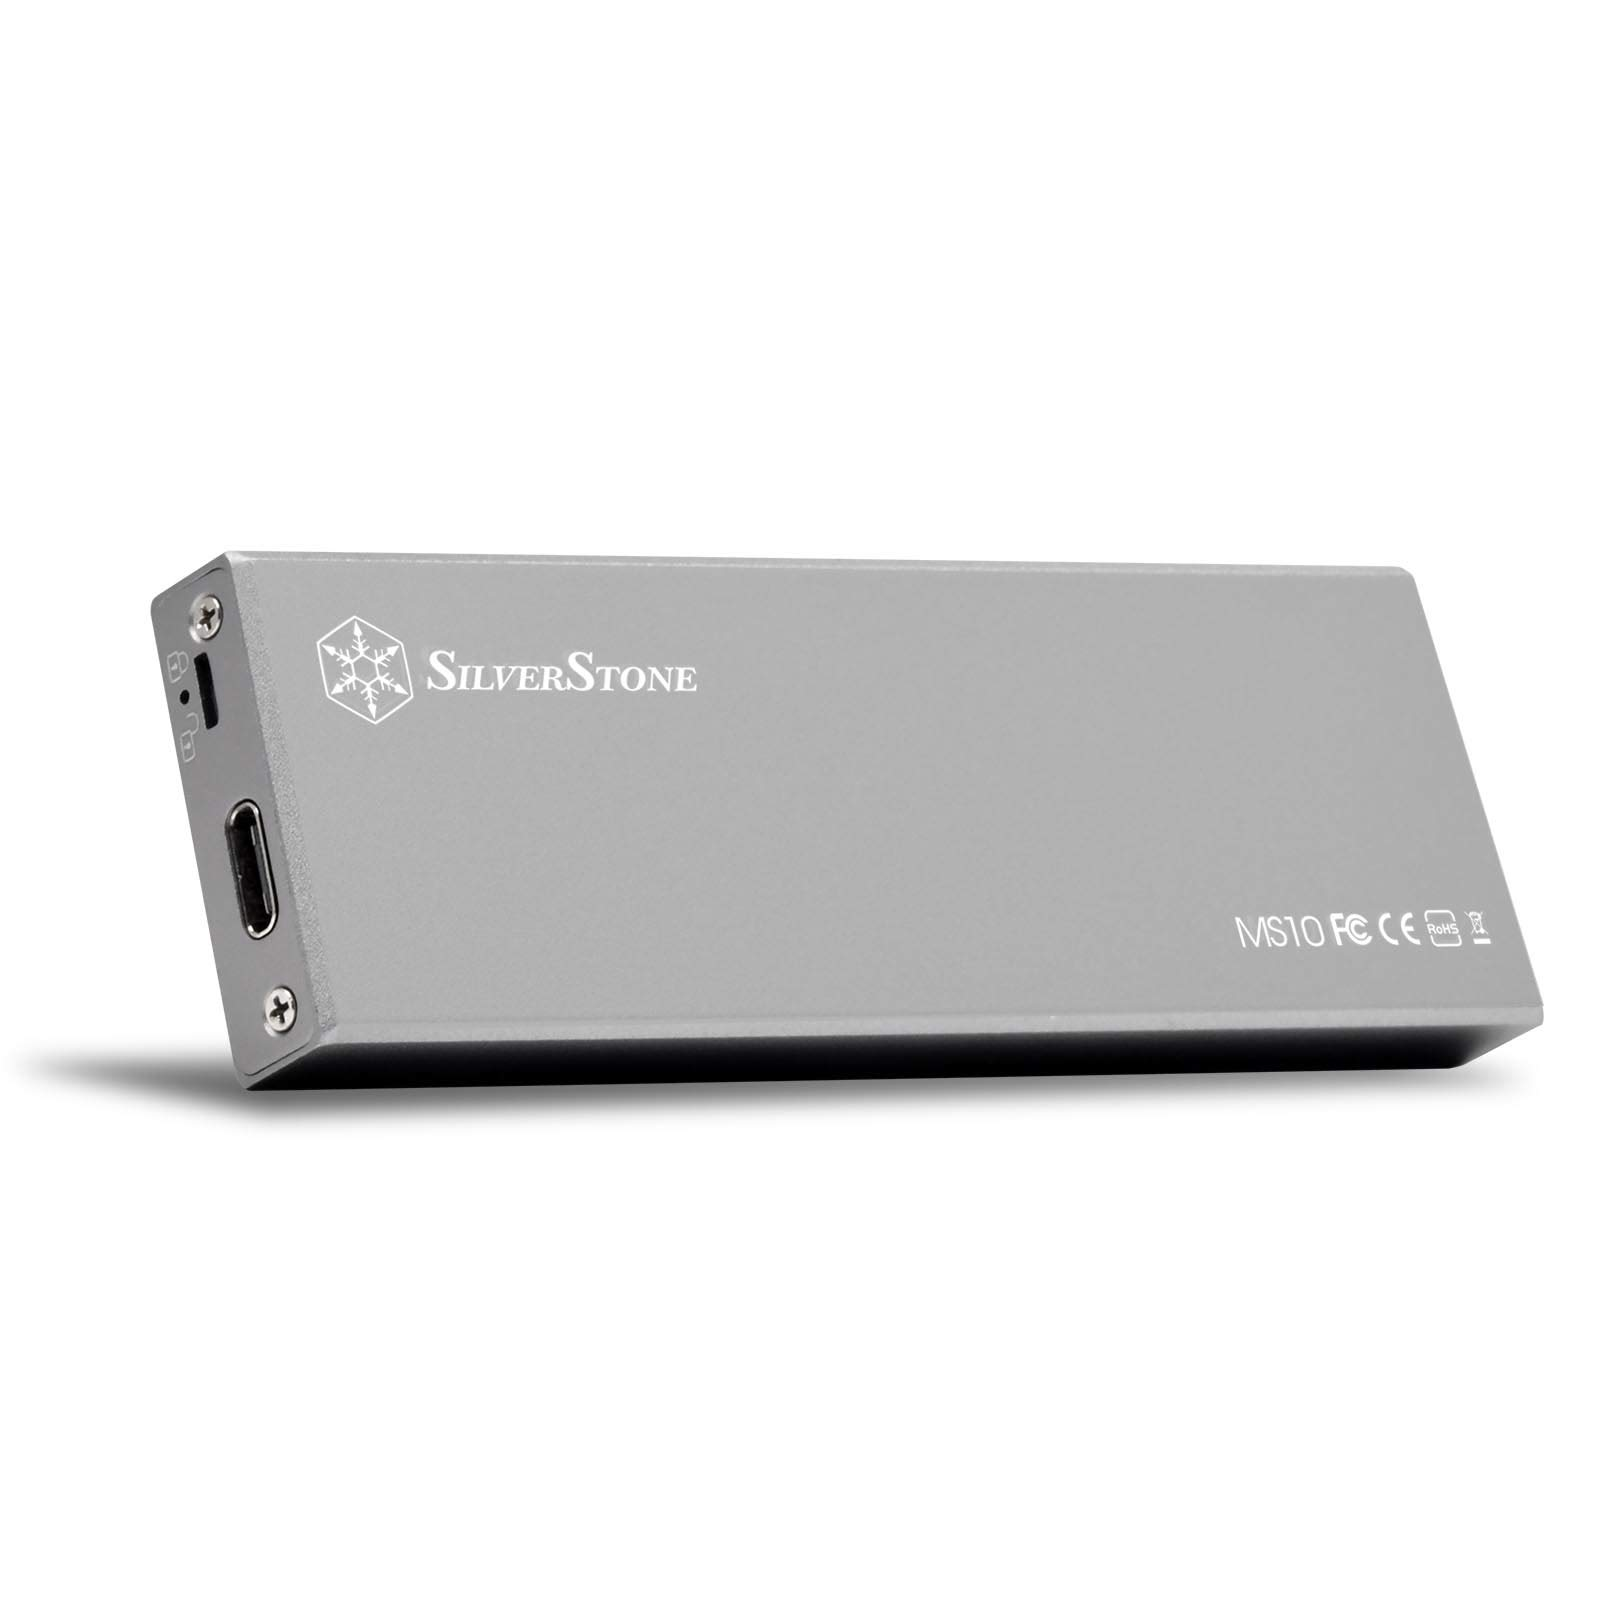 SilverStone Technology M.2 SATA SSD Enclosure Dor 2242, 2260, 2280 US 3.1 Gen 2 Interface Up to 10 GB/S with Type C Cable